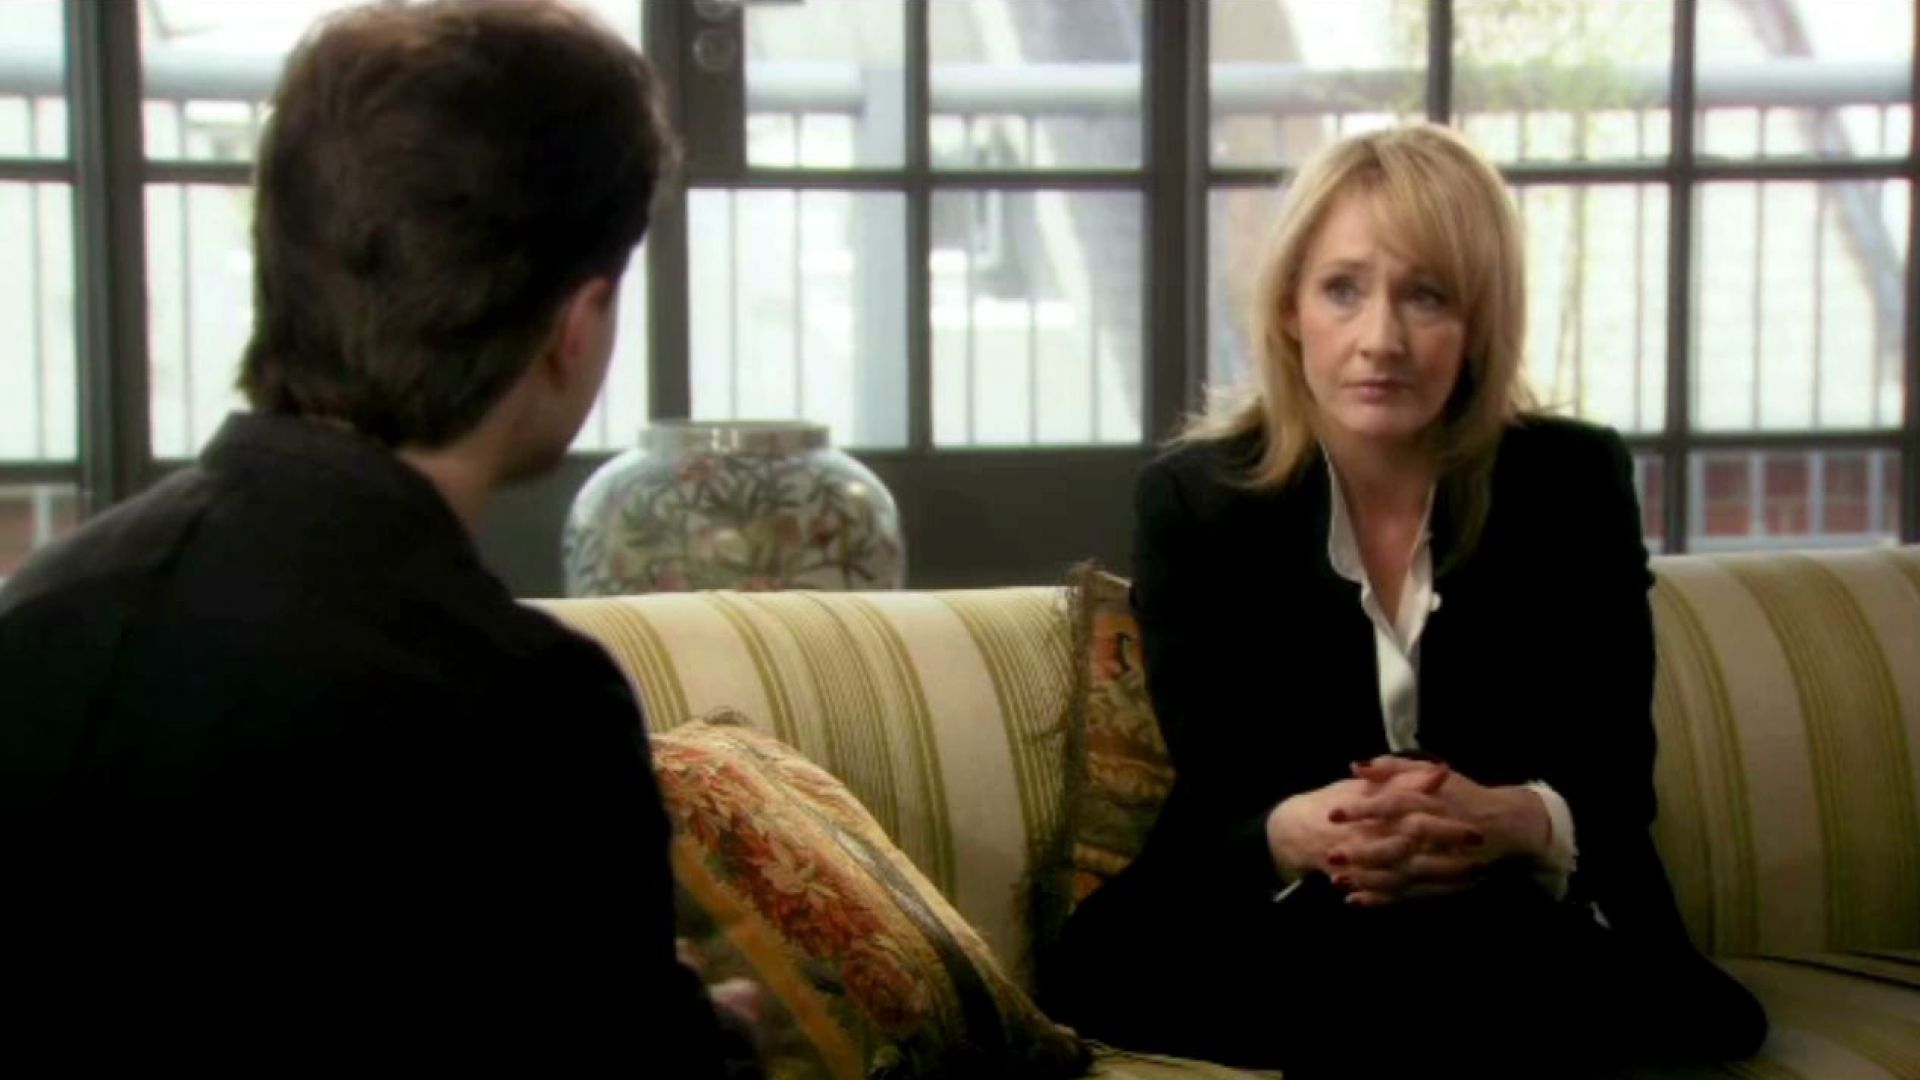 Daniel Radcliffe and J.K. Rowling talk about the Potter fan base